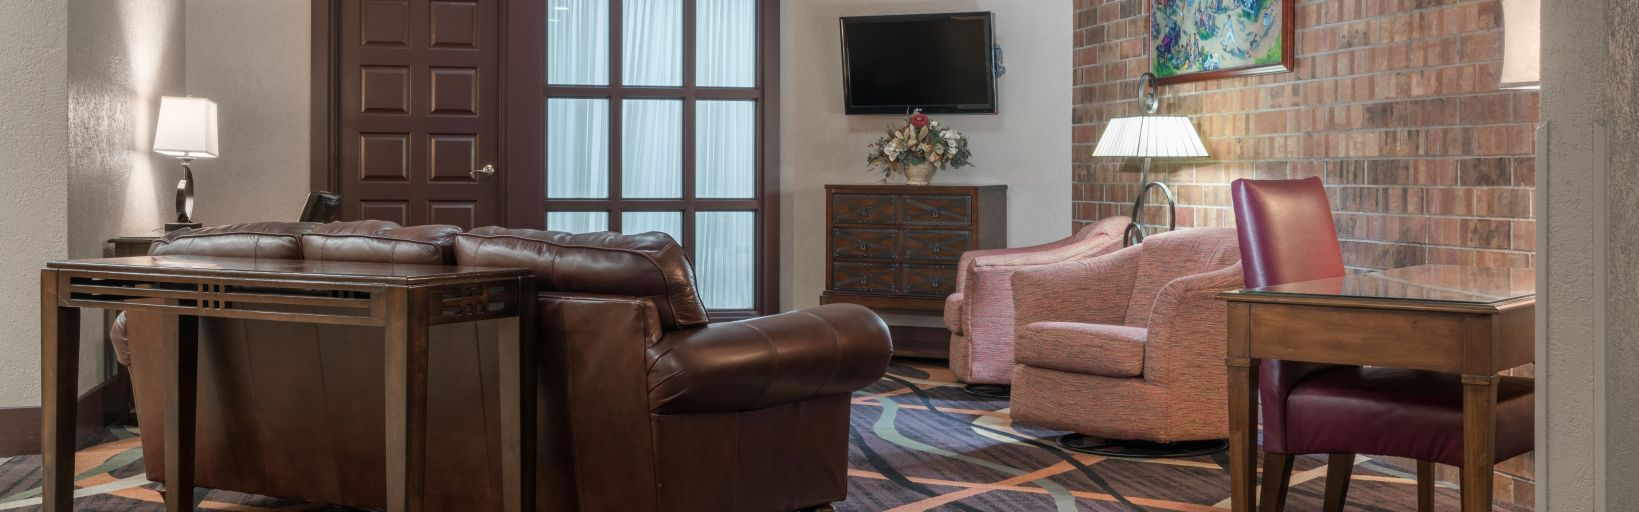 Enjoy Wireless High Sd Internet Access Throughout The Property